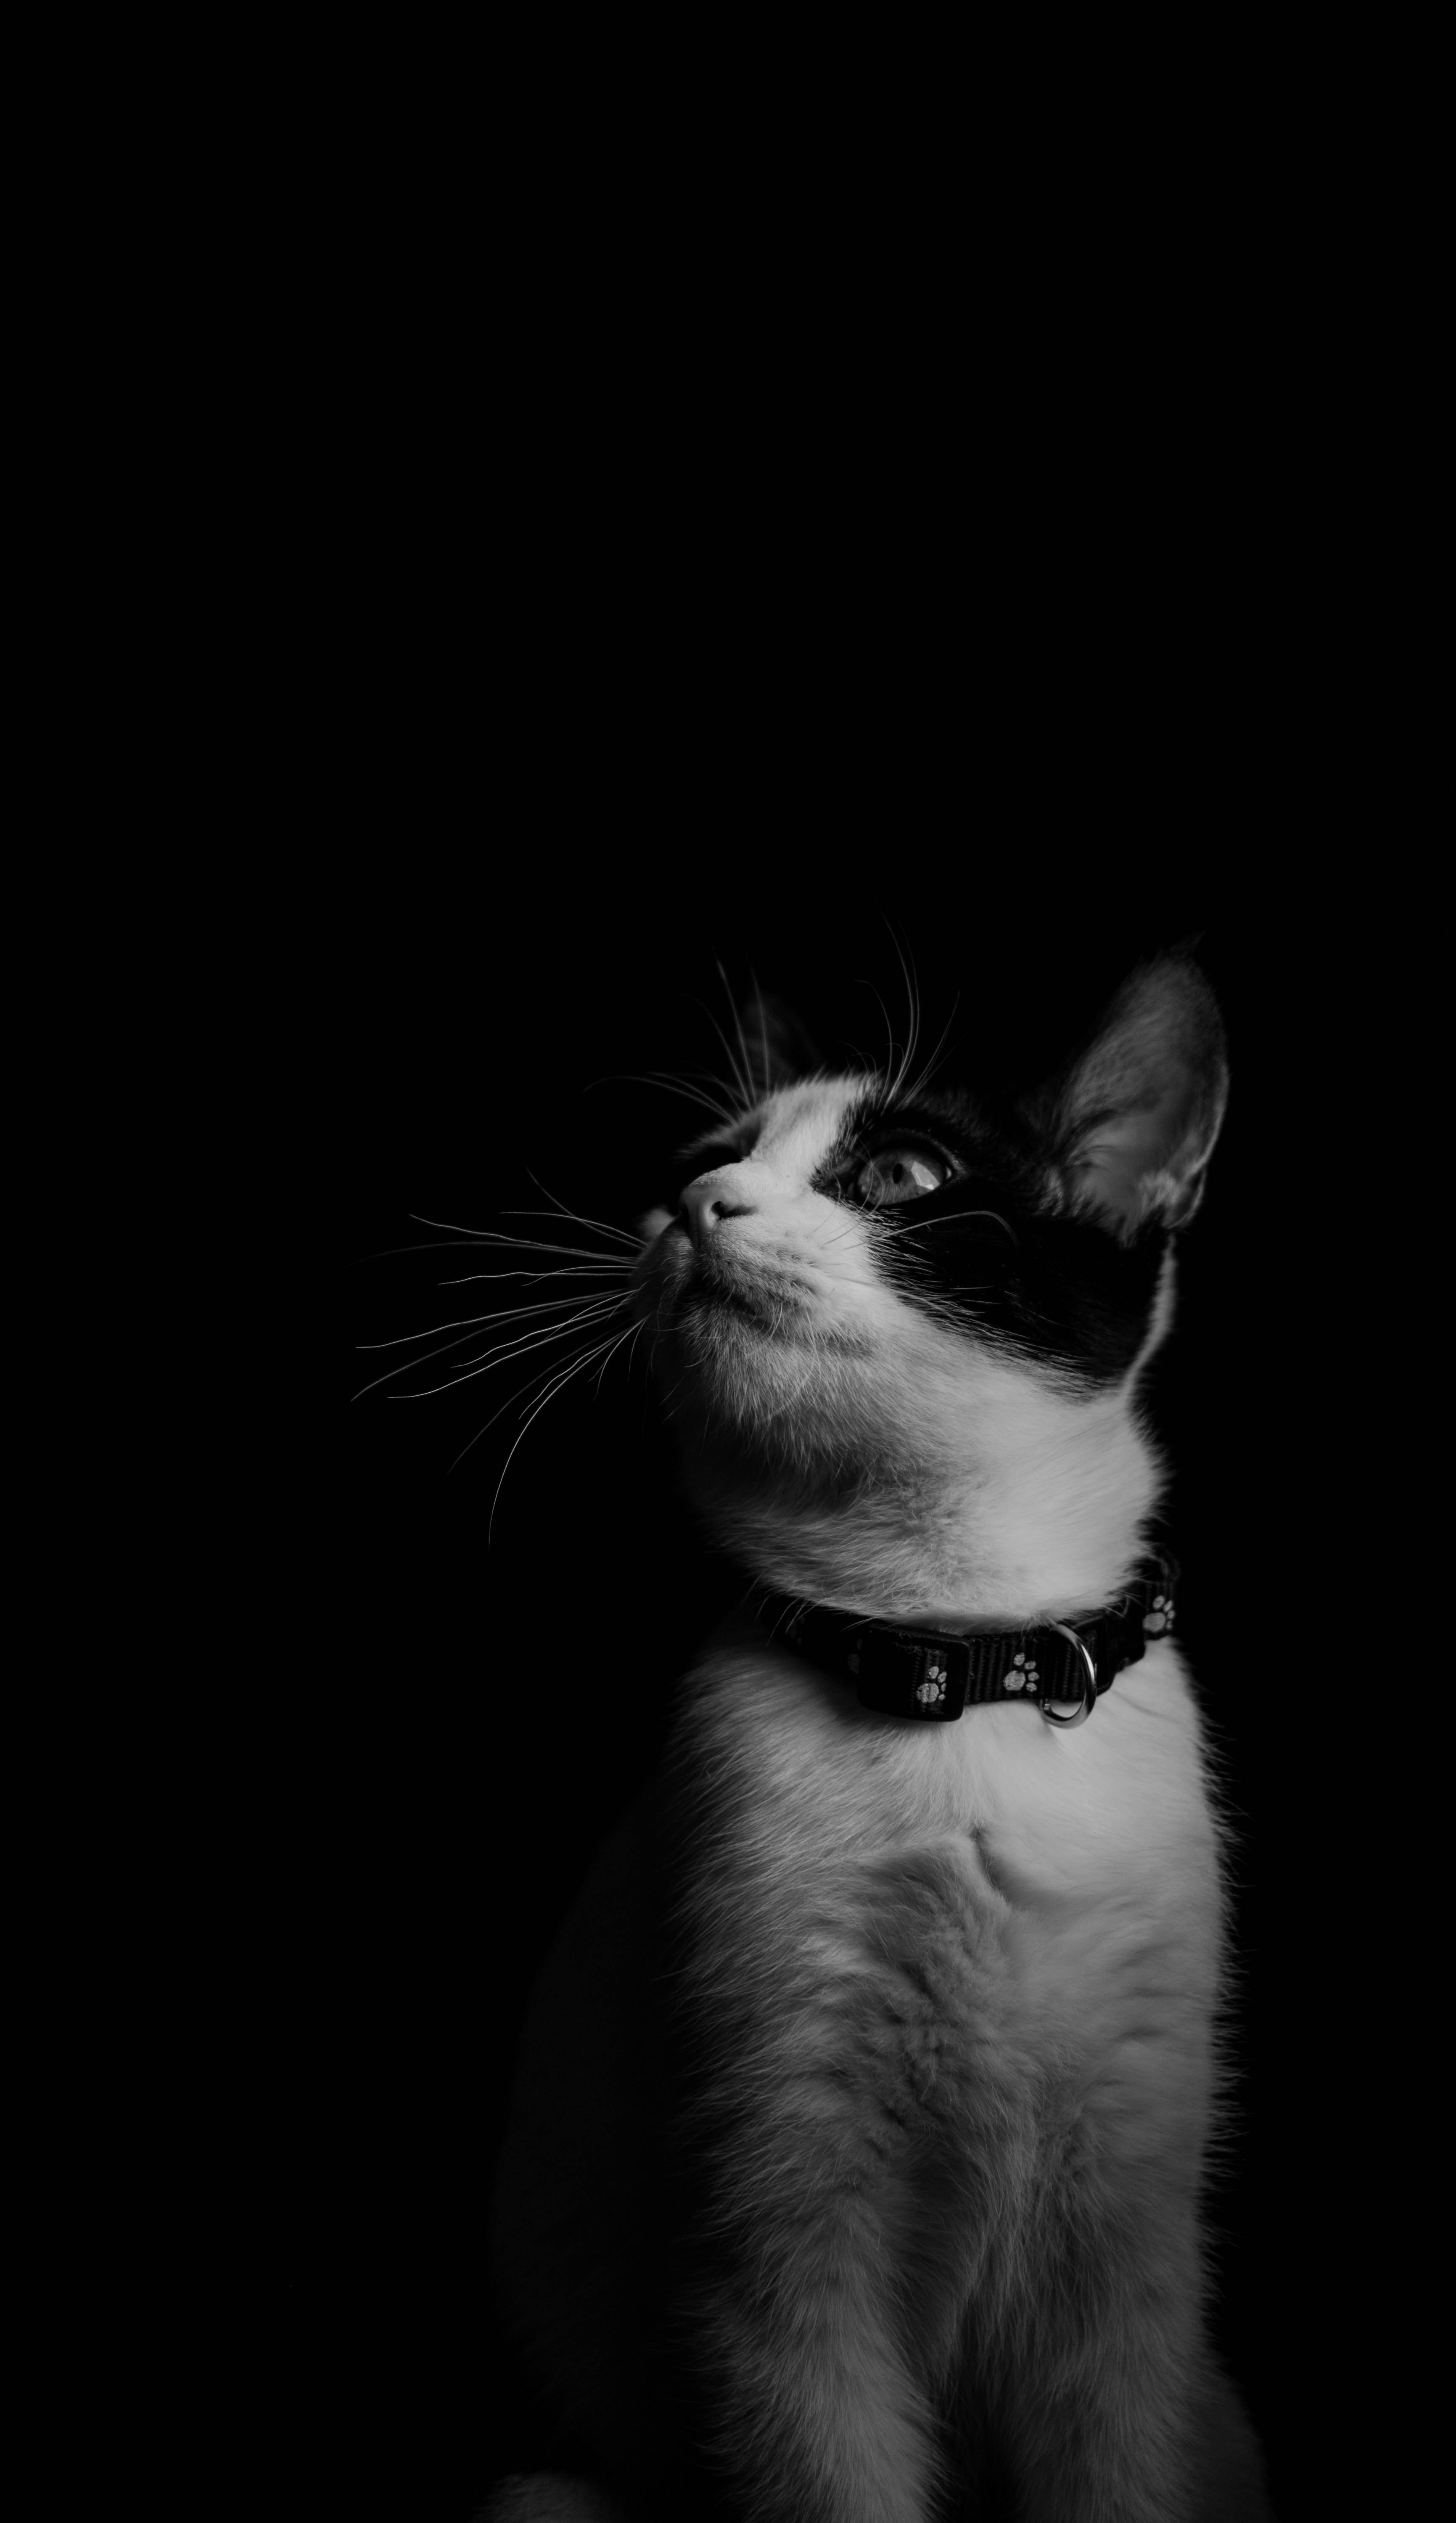 104970 Screensavers and Wallpapers Collar for phone. Download Animals, Cat, Kitty, Kitten, Bw, Chb, Collar pictures for free